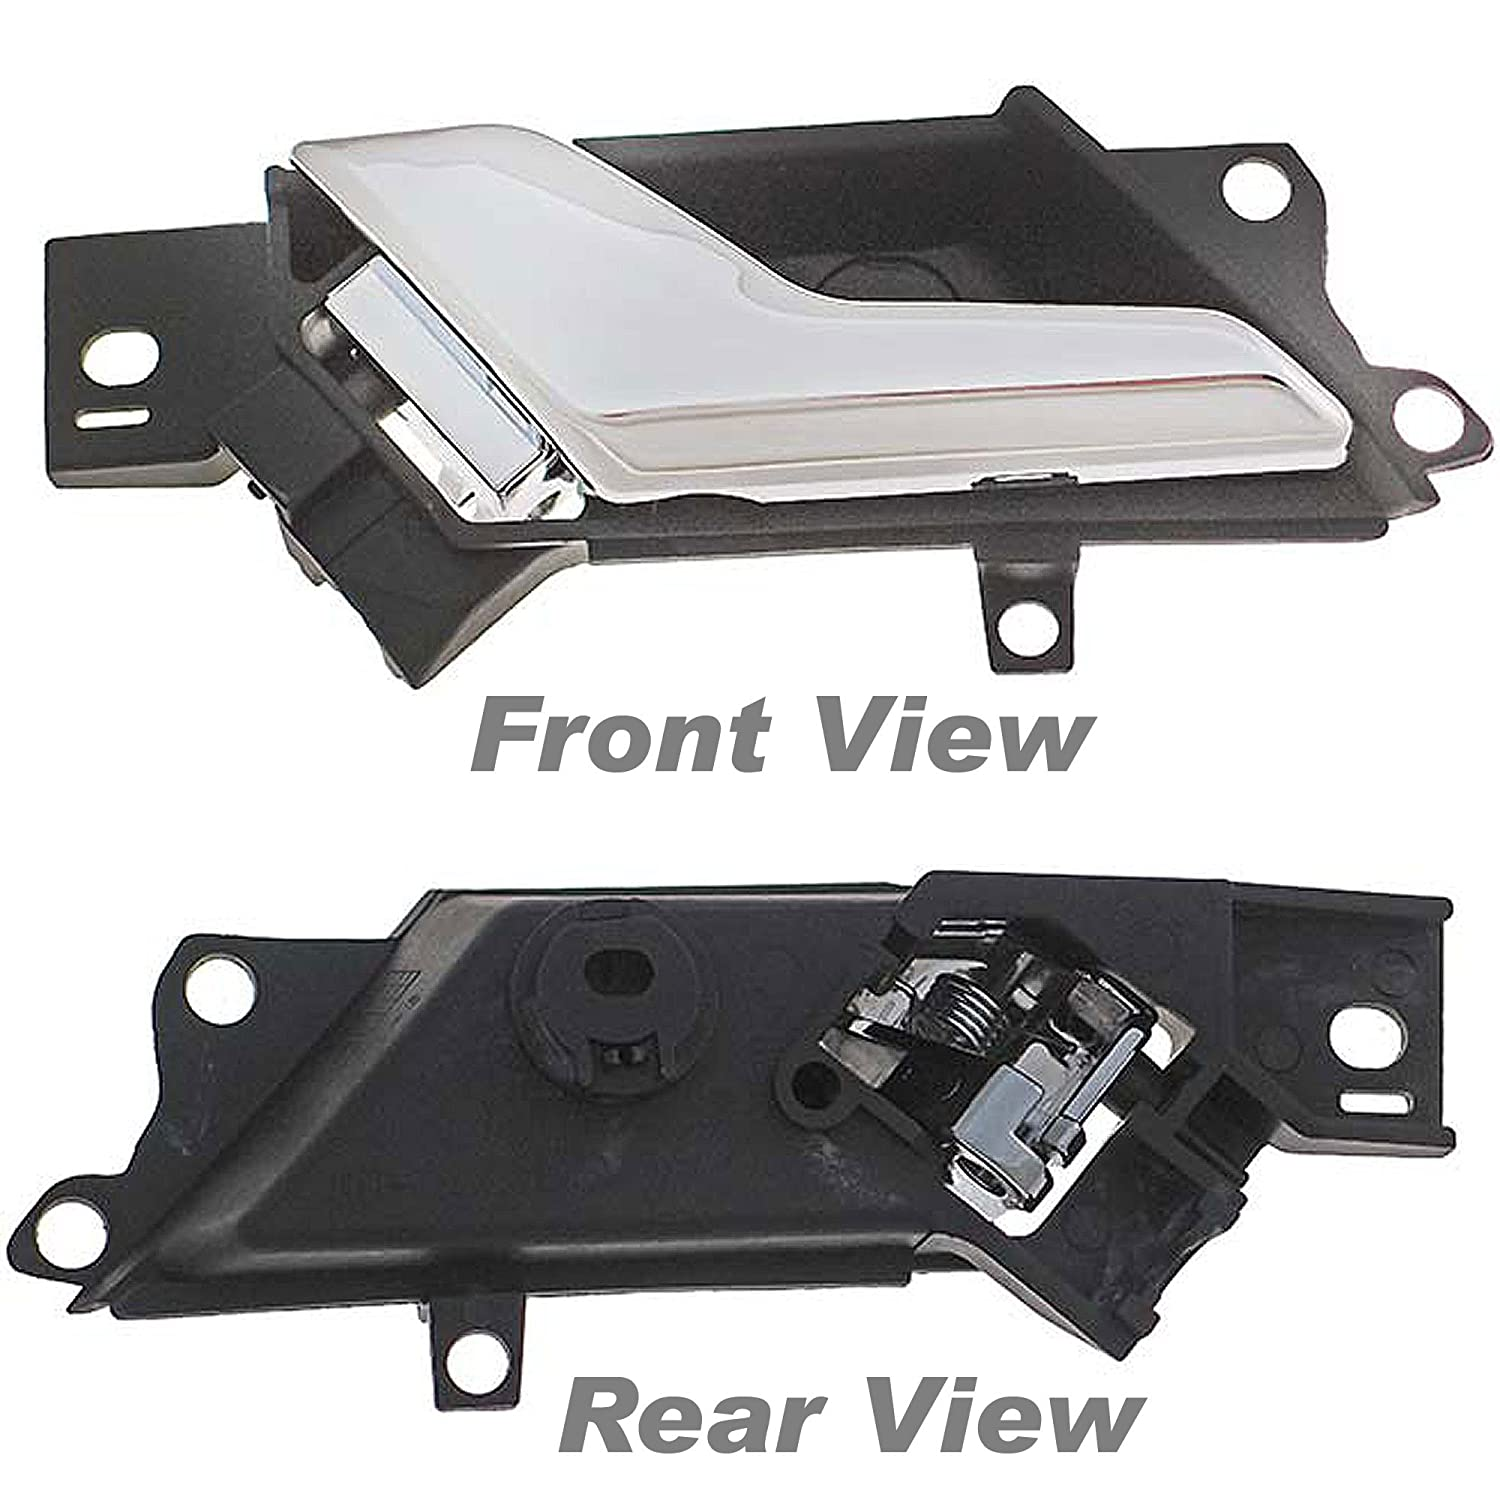 Replaces 96861998, 96660863, 20983660, 20983673 APDTY 93766 Interior Door Handle Fits Driver-Side Left Front or Rear Compatible With 2012-2015 Chevrolet Captiva Sport or 2008-2010 Saturn Vue